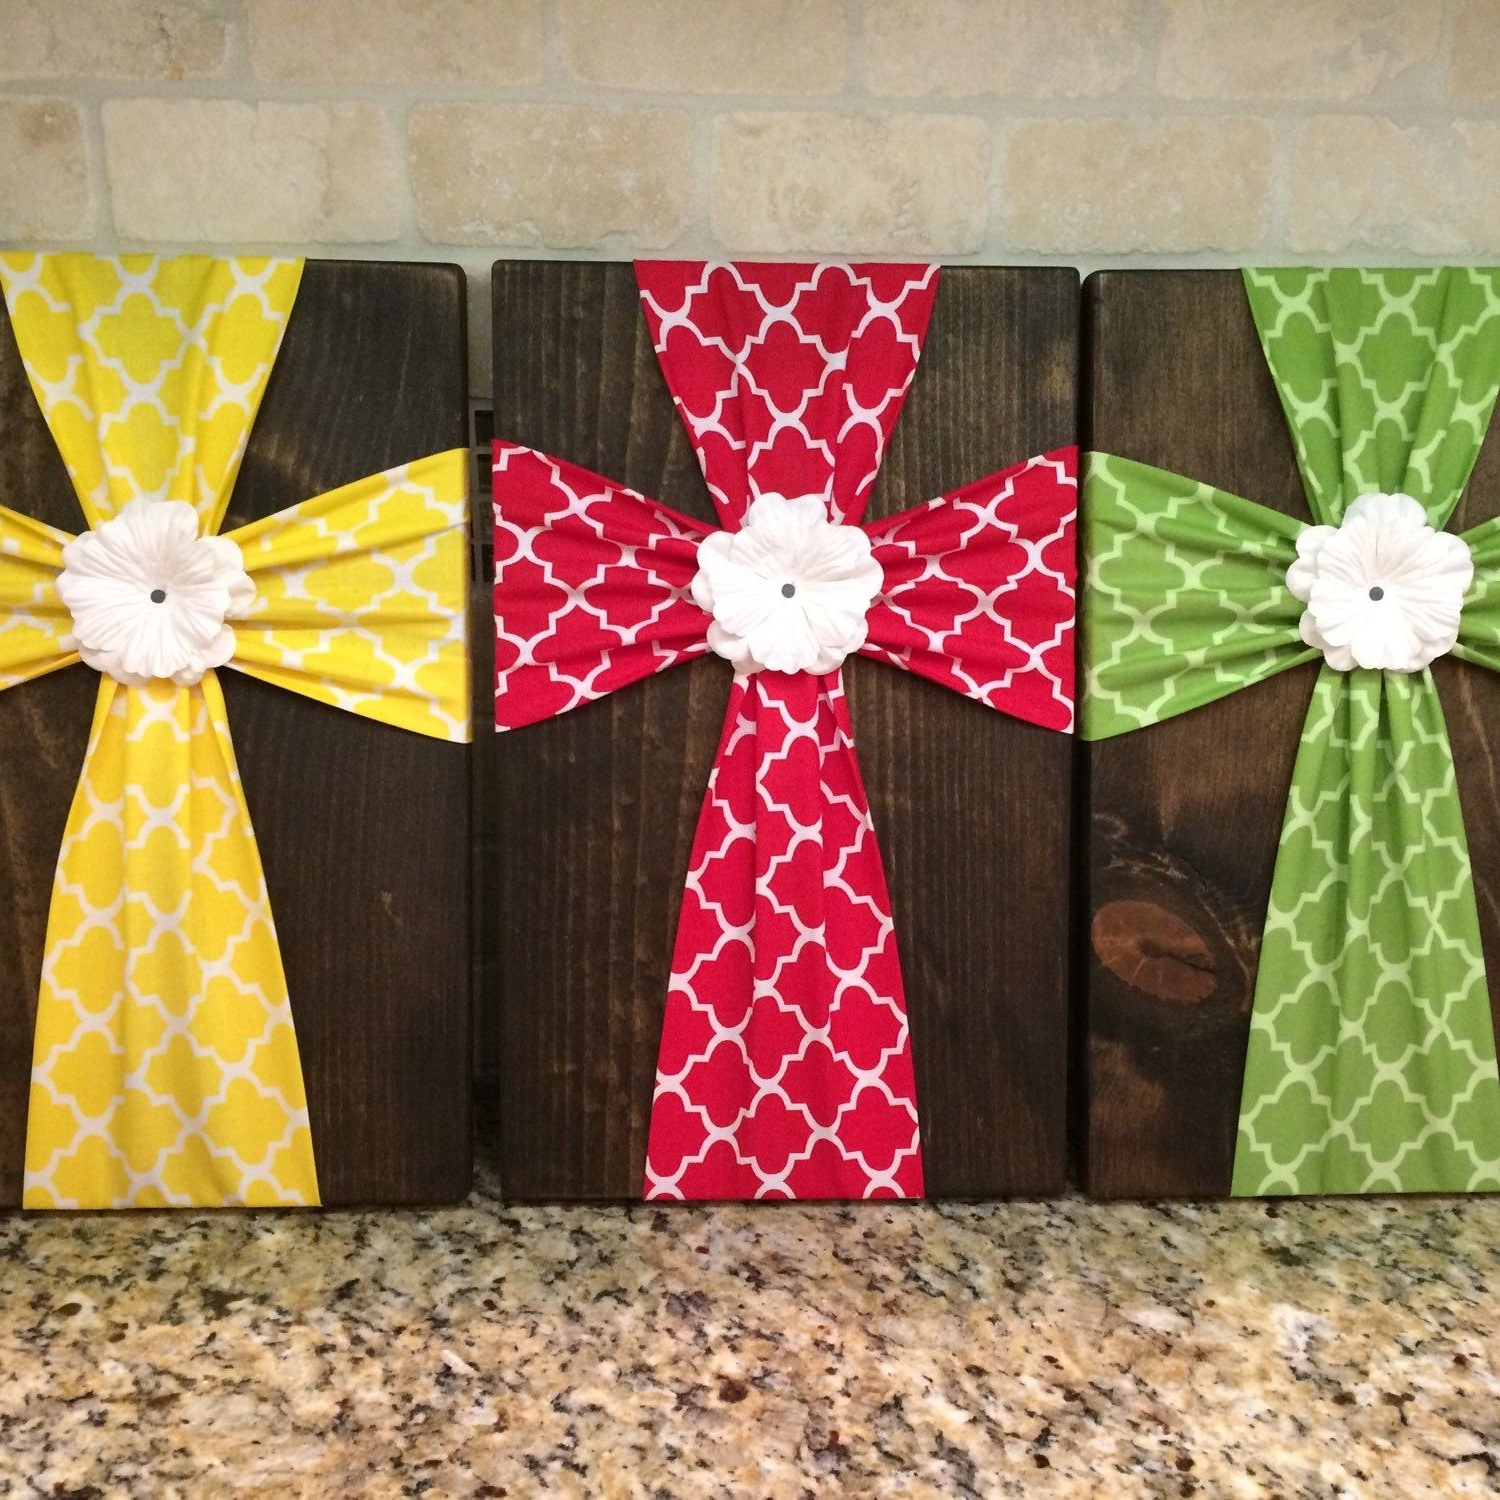 Recent Wall Art – Fabric Cross On Wood Plaque With Flower Embellishment For Fabric Cross Wall Art (View 13 of 15)